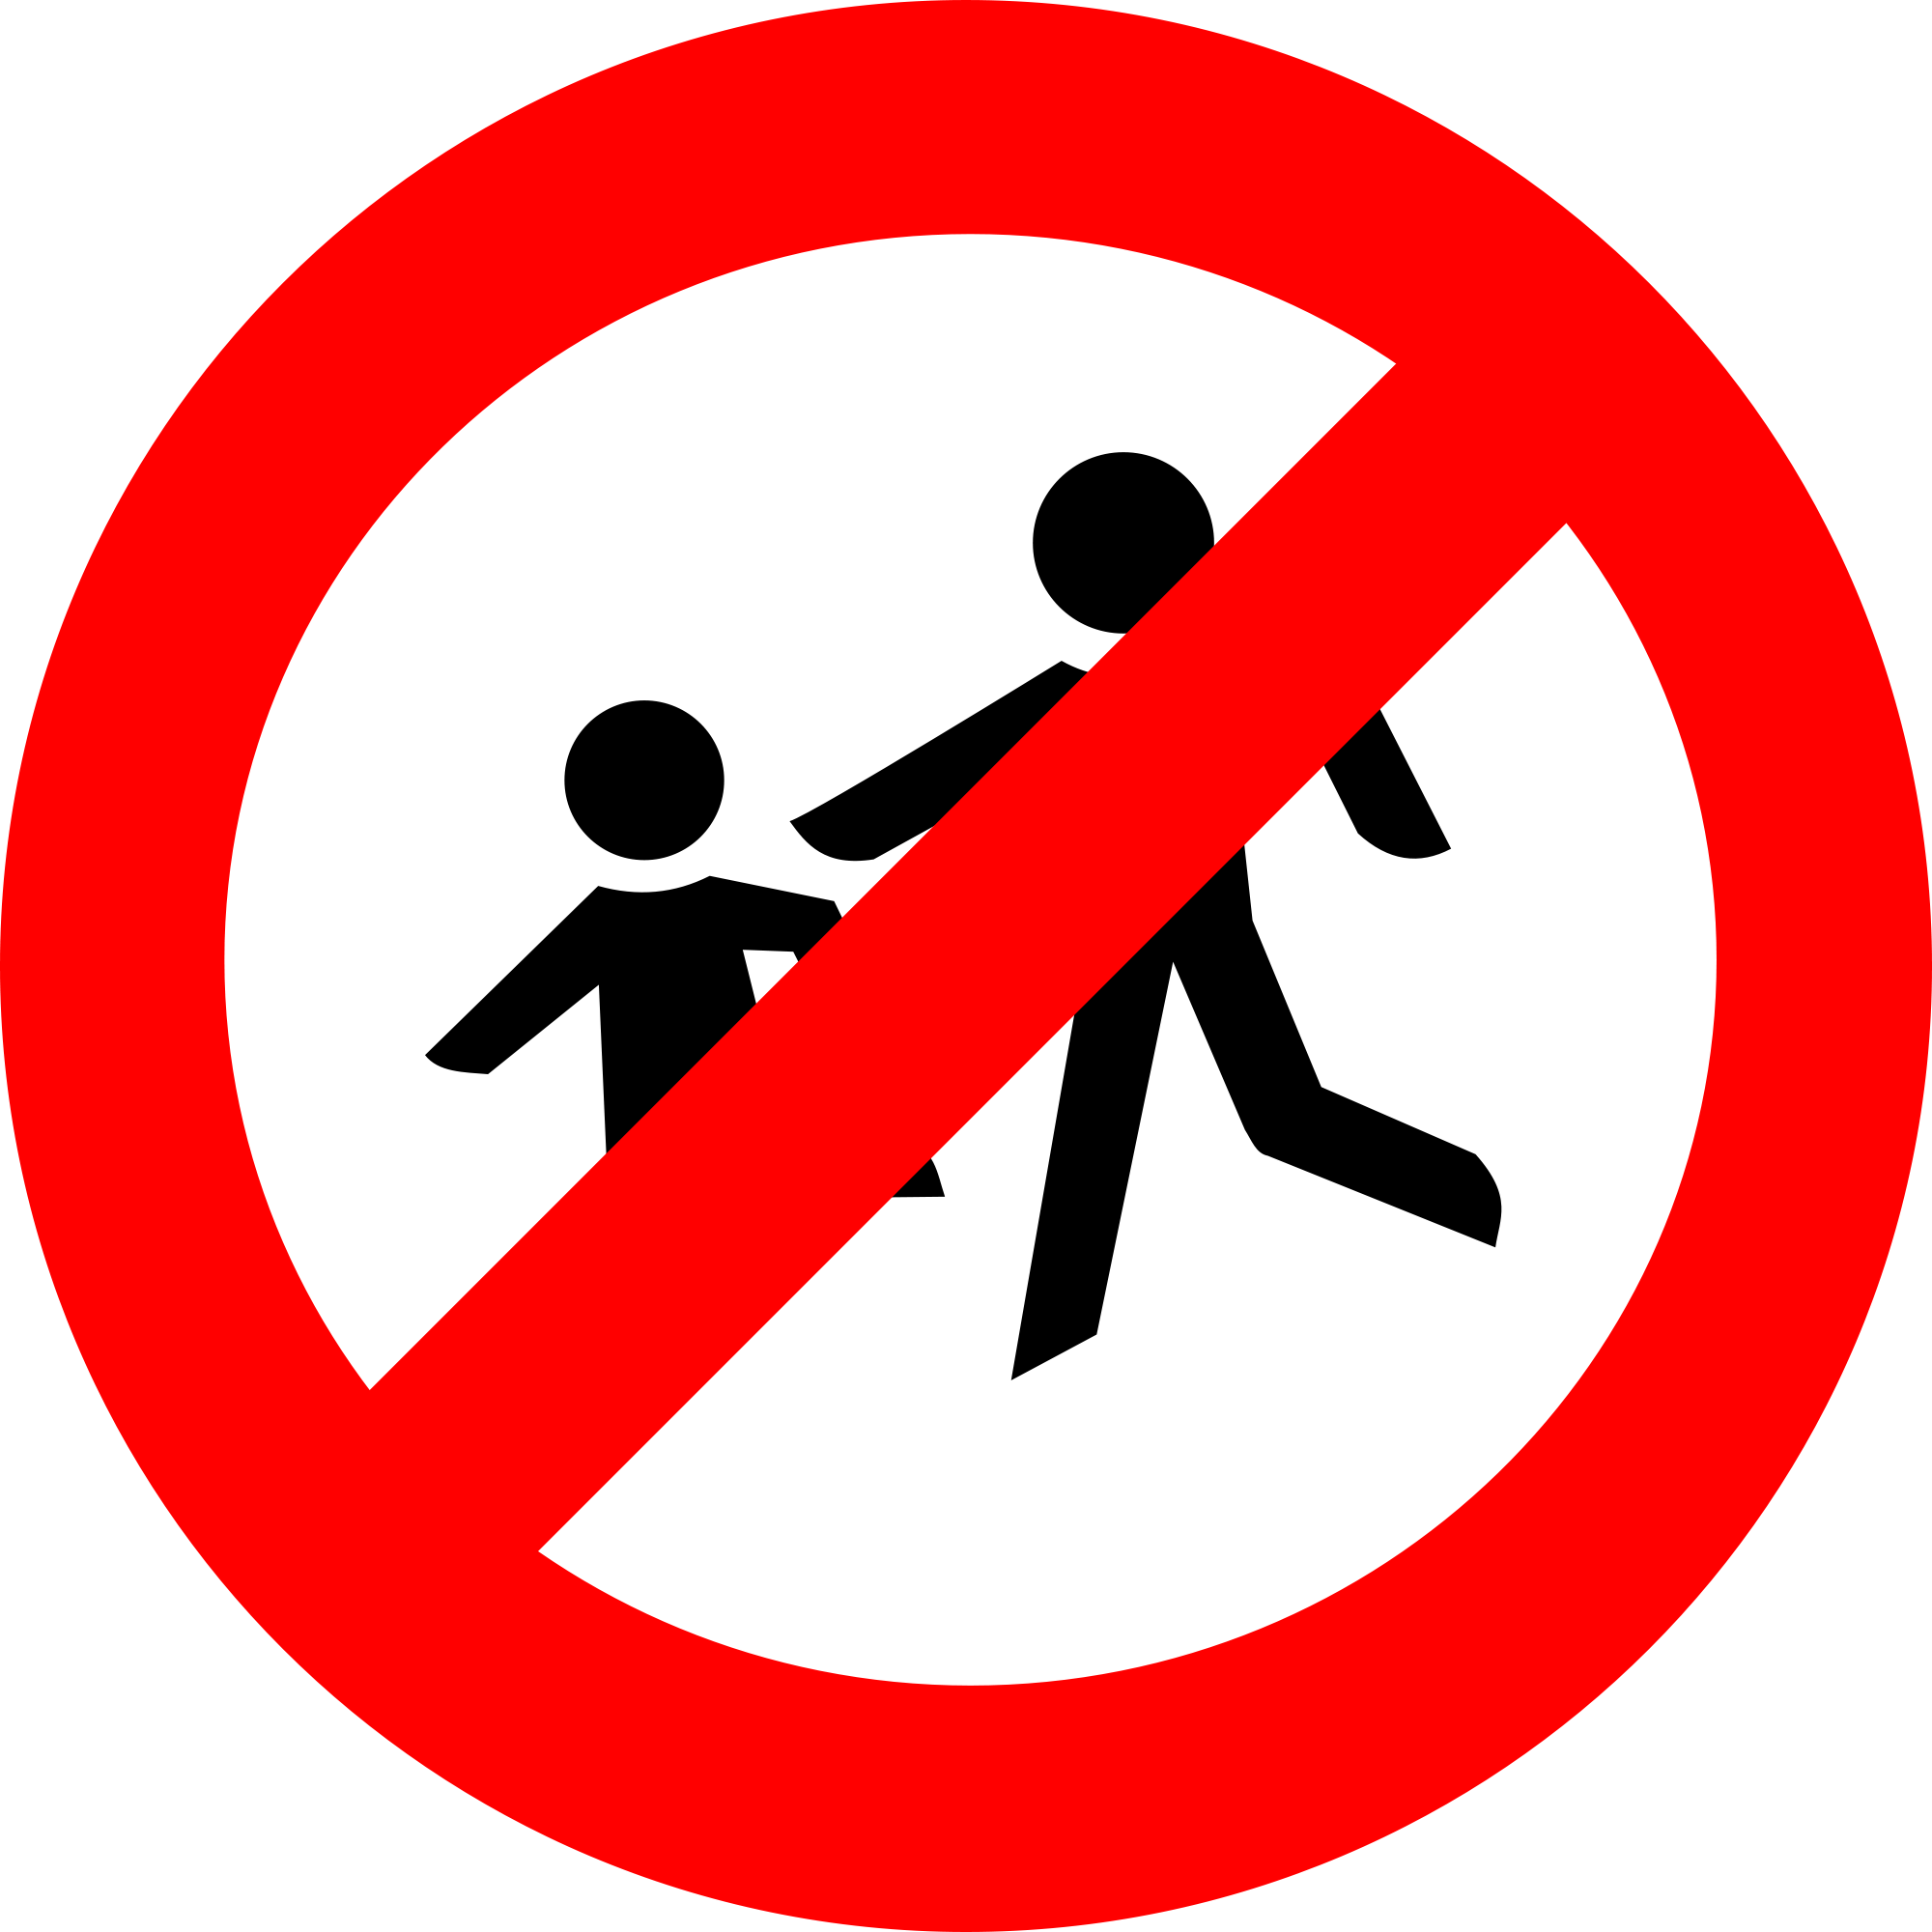 No children png. File zeichen svg wikimedia